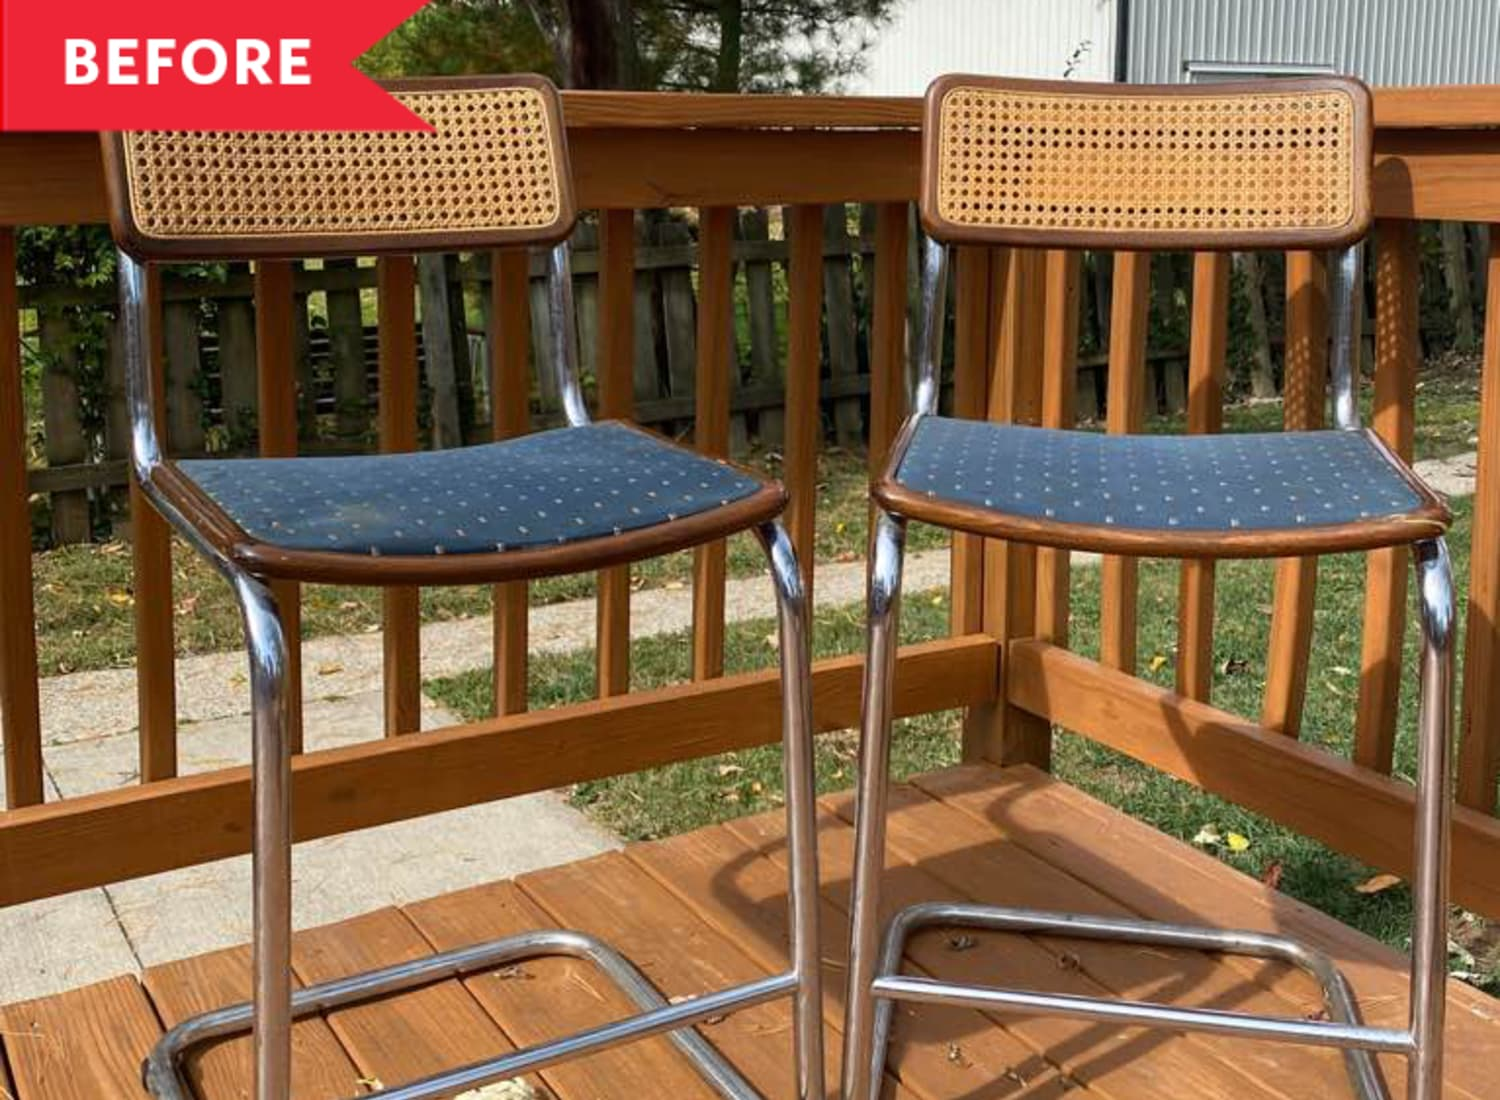 Before & After: These Dated Chairs Got Redone for Just $23 — Thanks to 2 Surprising Pantry Items